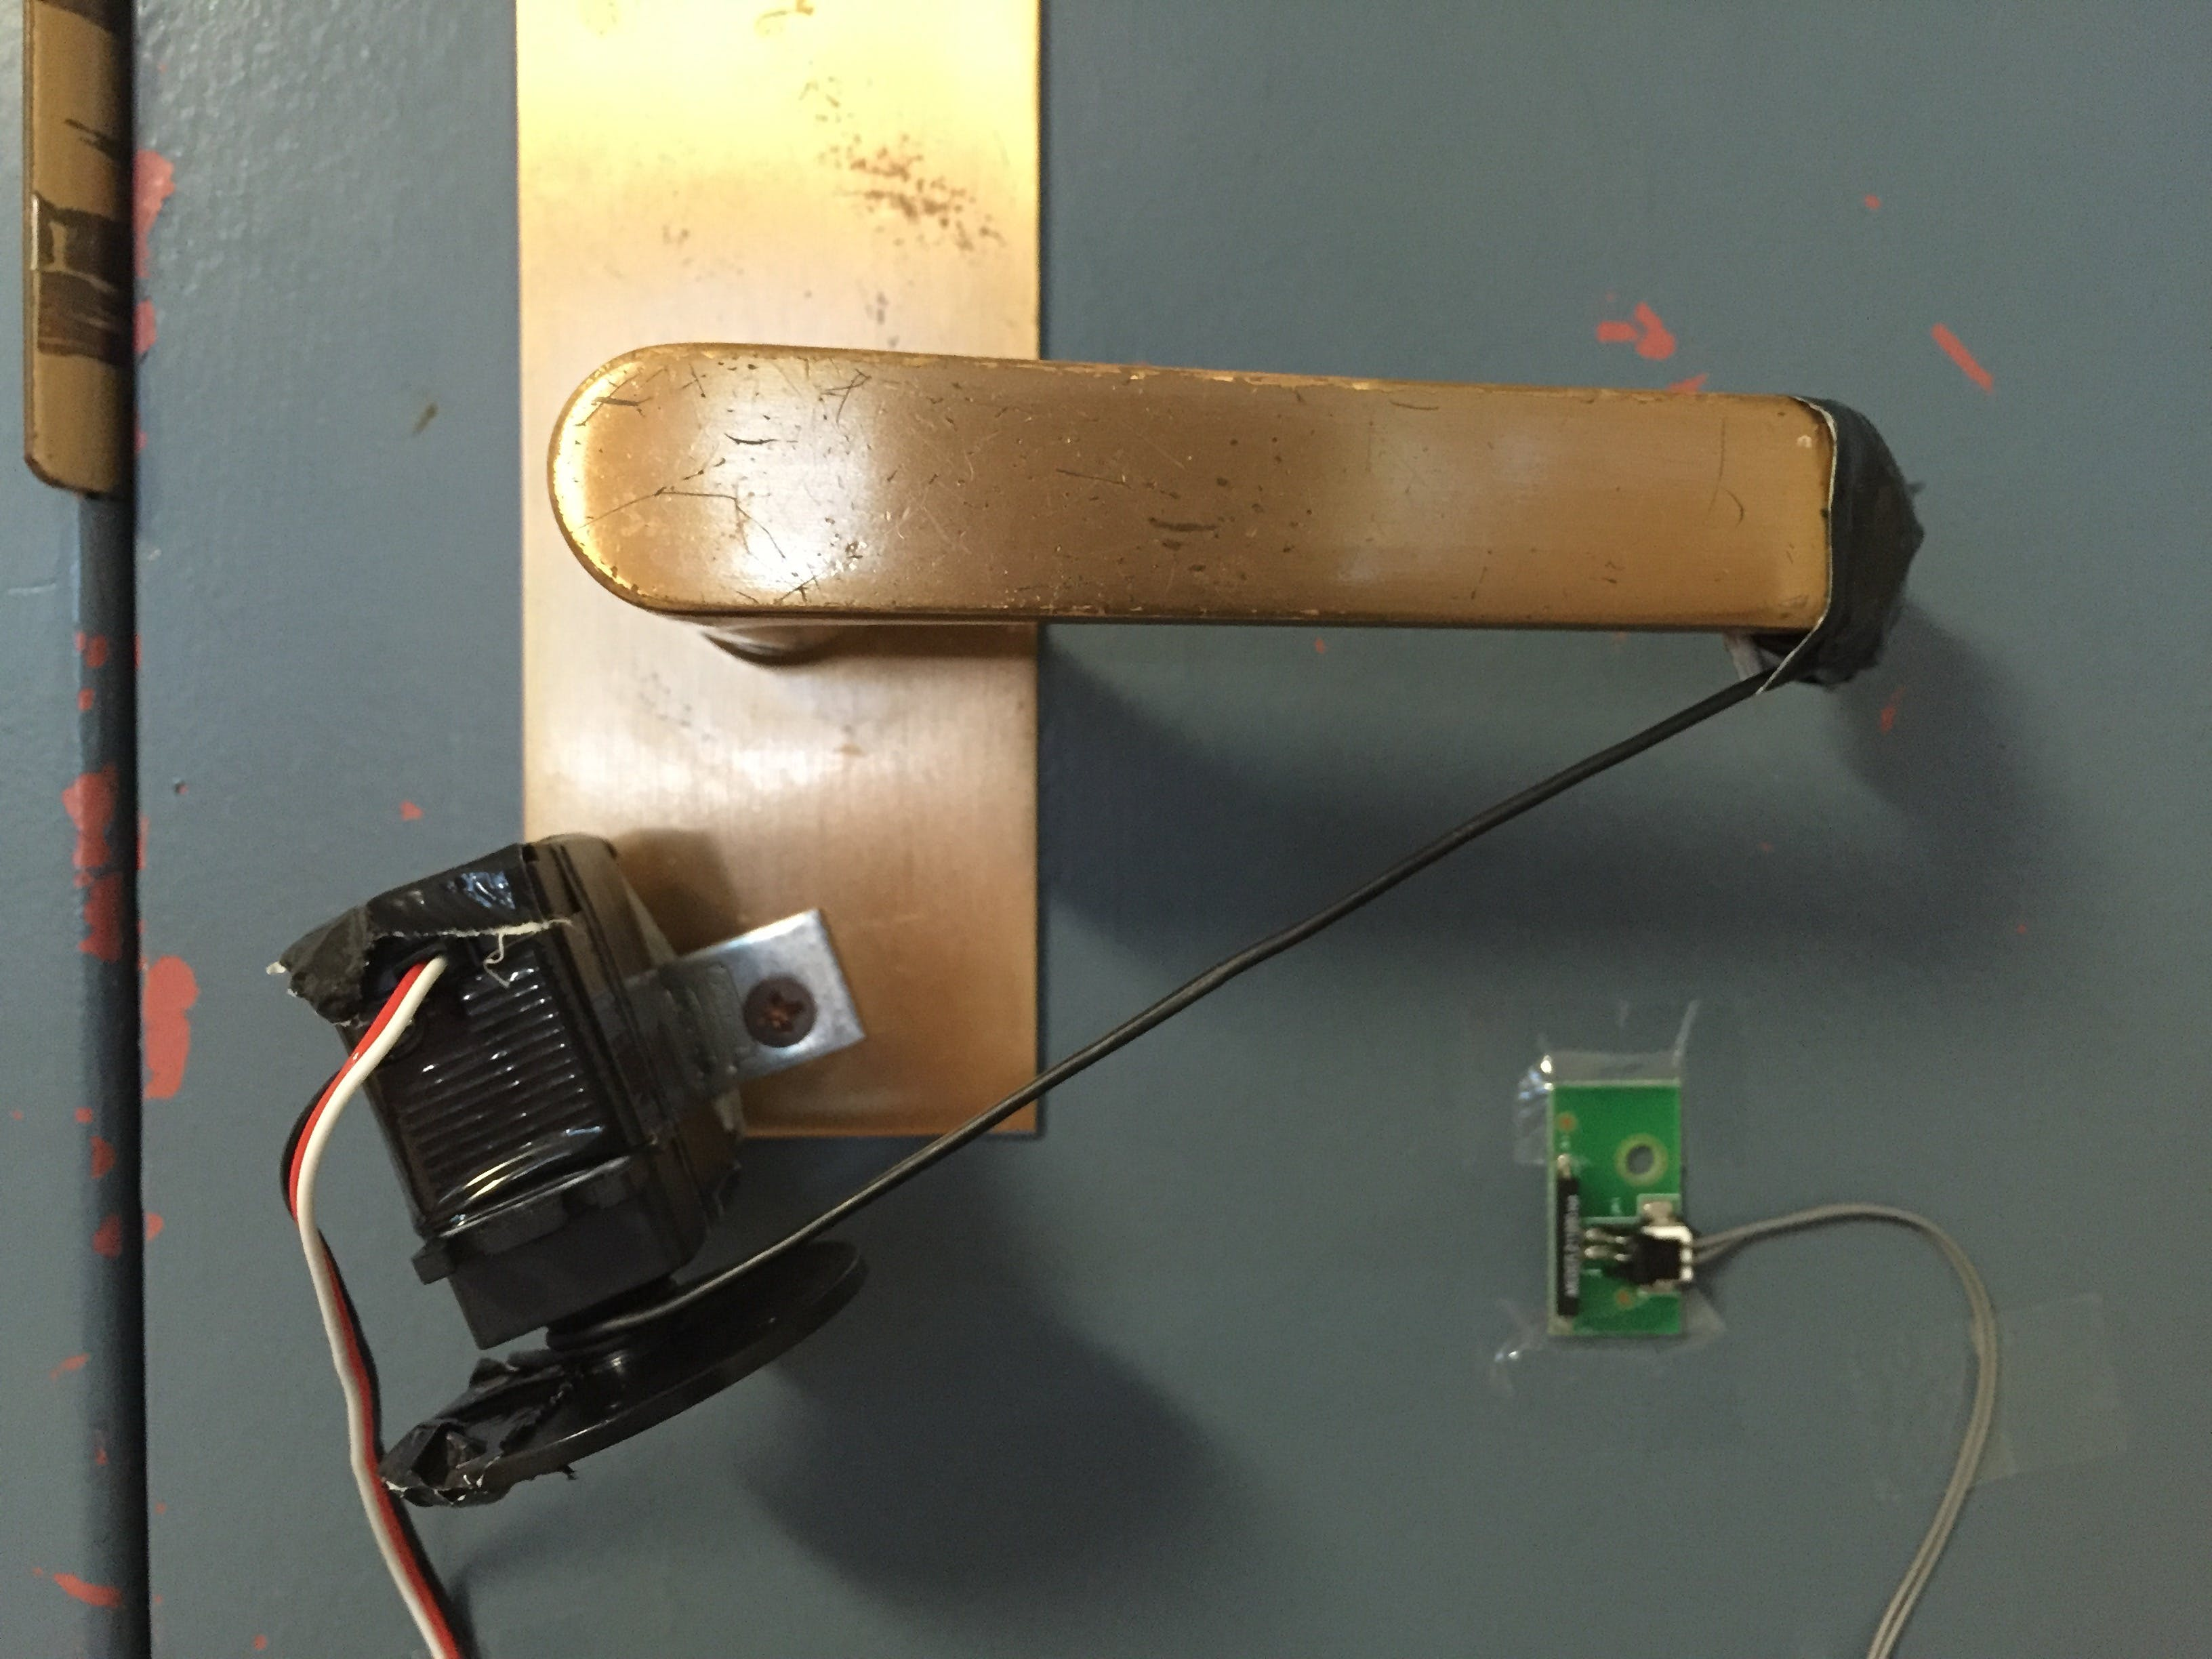 The door lock is controlled by a cable attached between the door handle and a continuous rotation servo. The green PCB in the bottom right of the screen is a Reed switch which detects when the door is unlocked.